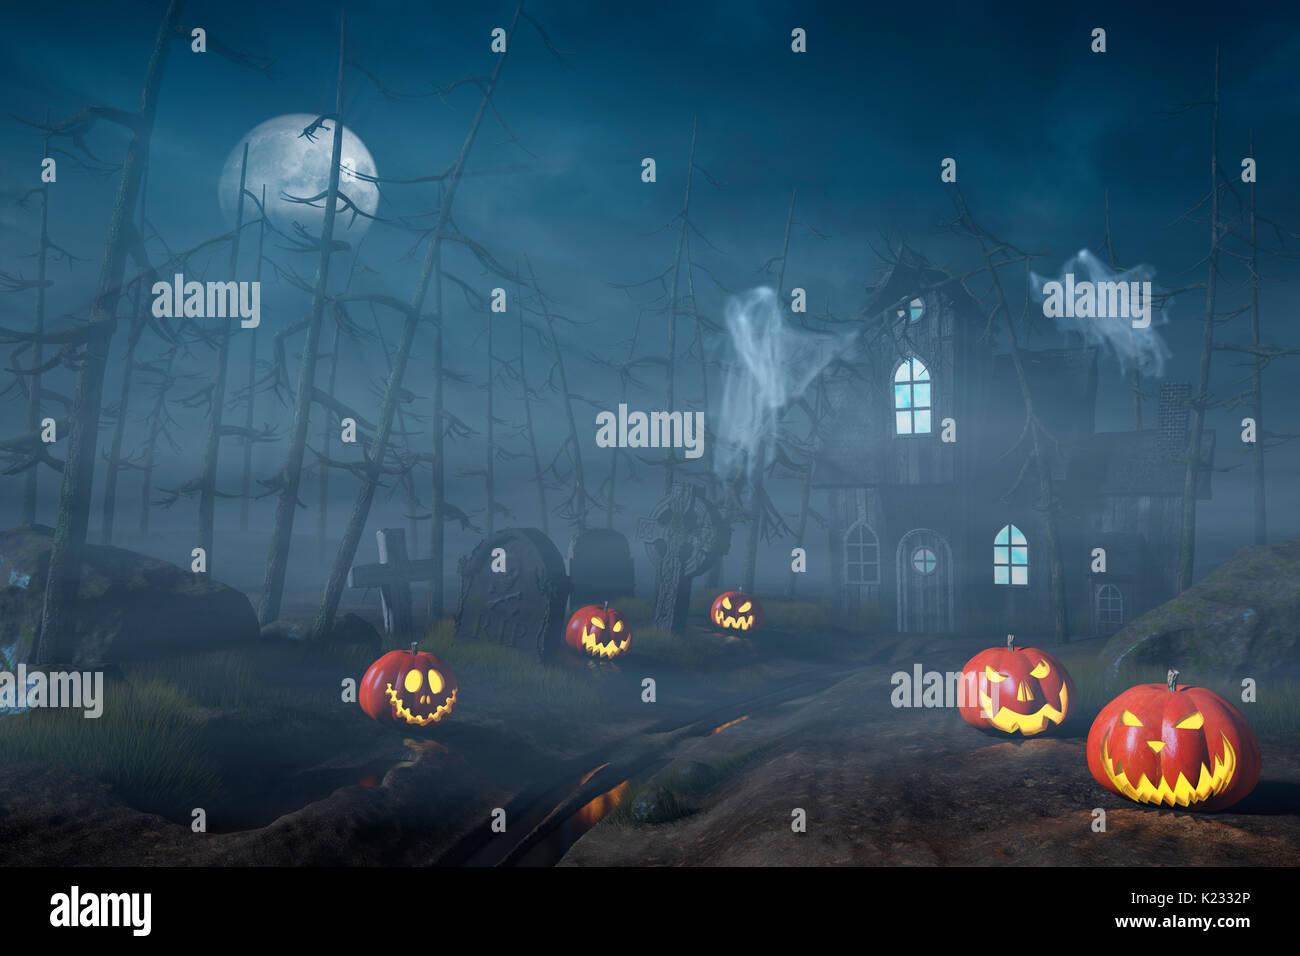 A cabin in a spooky and misty Halloween forest at night with Jack O'Lanterns and ghosts. - Stock Image